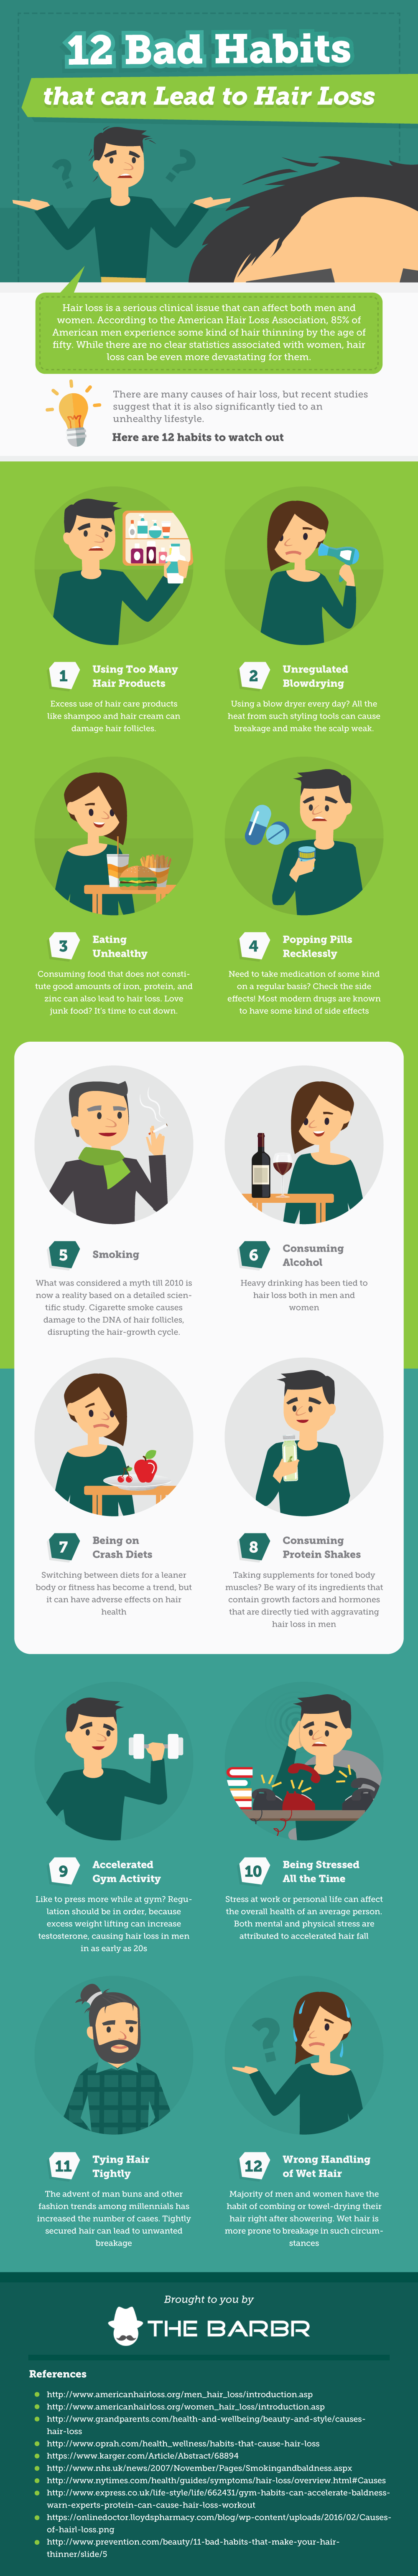 What Causes Thinning Hair? 12 Bad Habits that Aggravate Hair Loss - Infographic